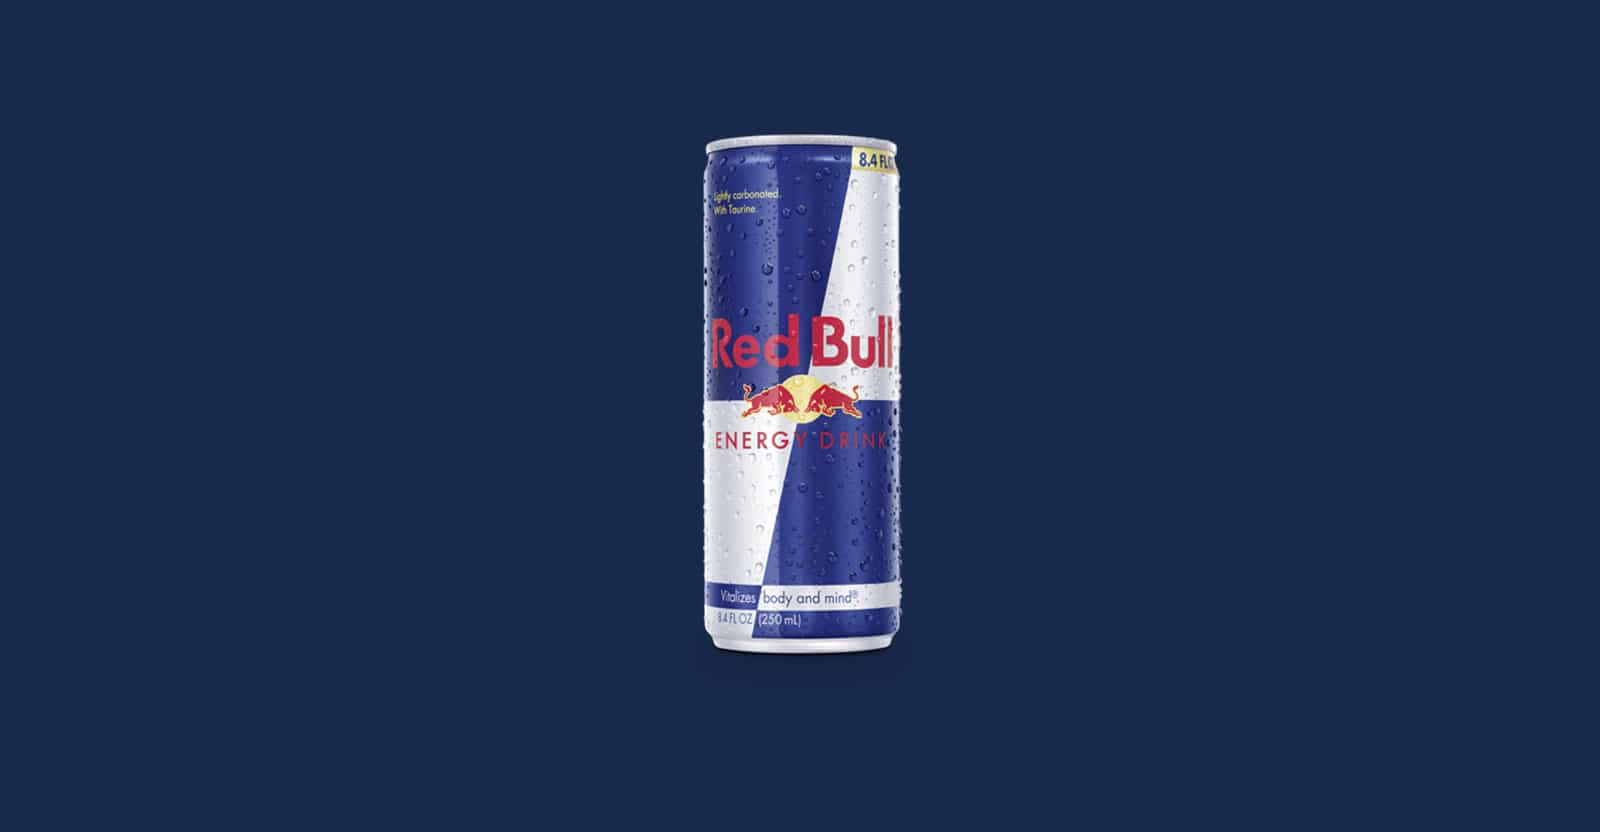 is red bull gluten-free